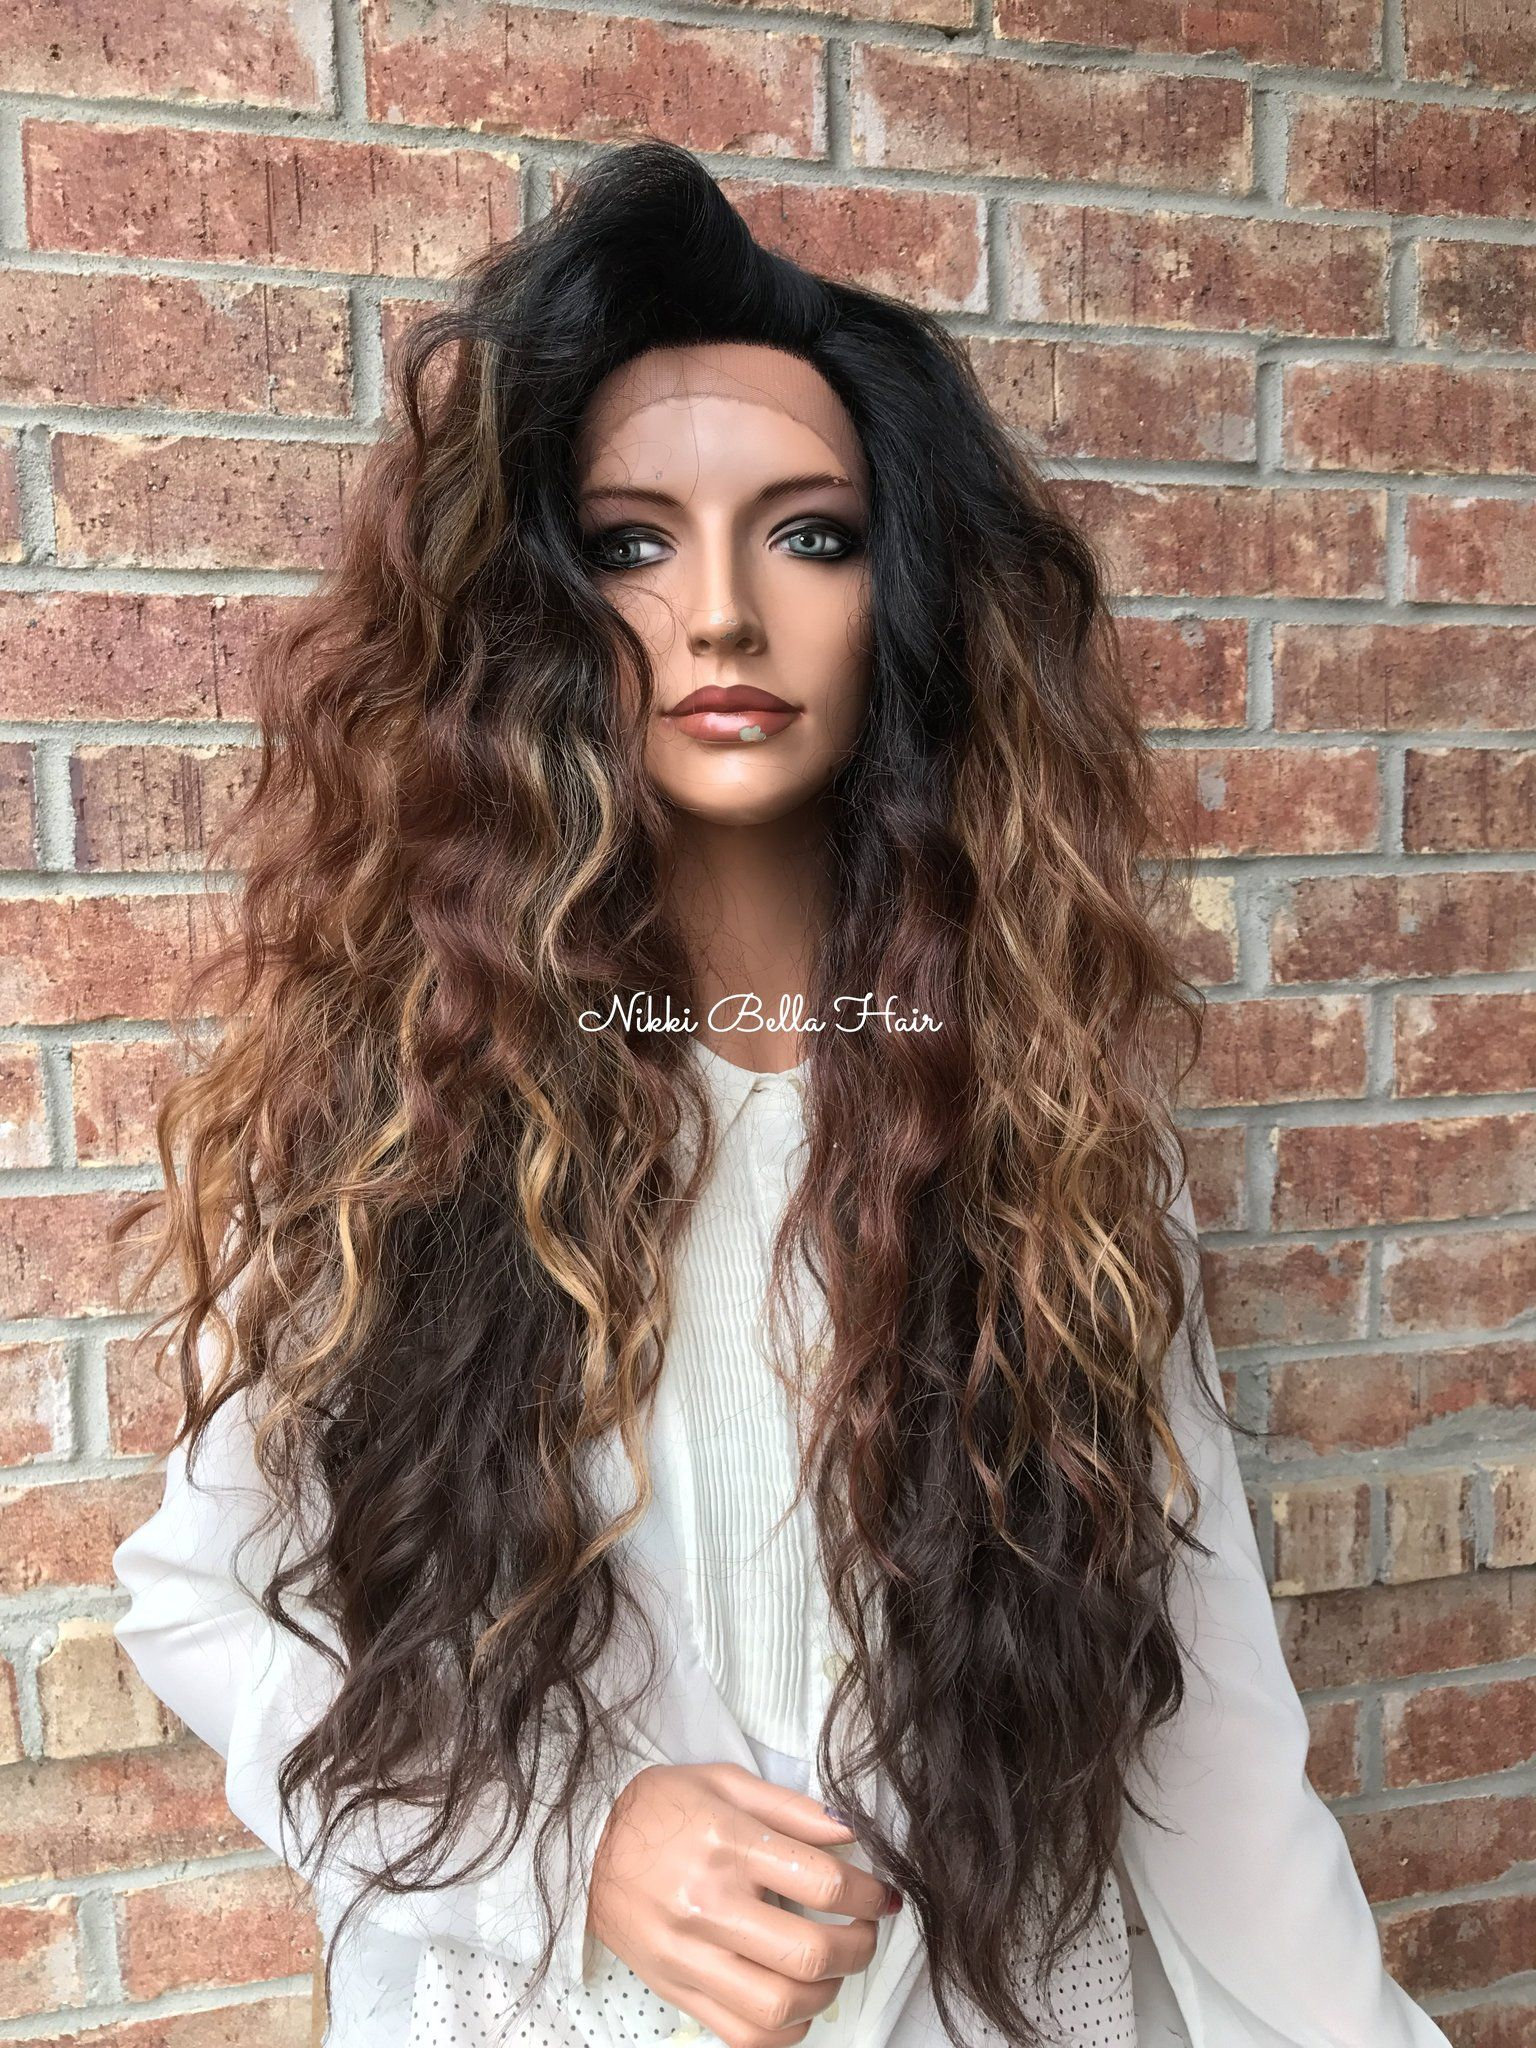 Lace Wigs 360 Lace Frontal Wig Pre Plucked With Baby Hair Malaysian Body Wave Wig Lace Front Human Hair Wigs For Black Women Remy Hair Bright And Translucent In Appearance